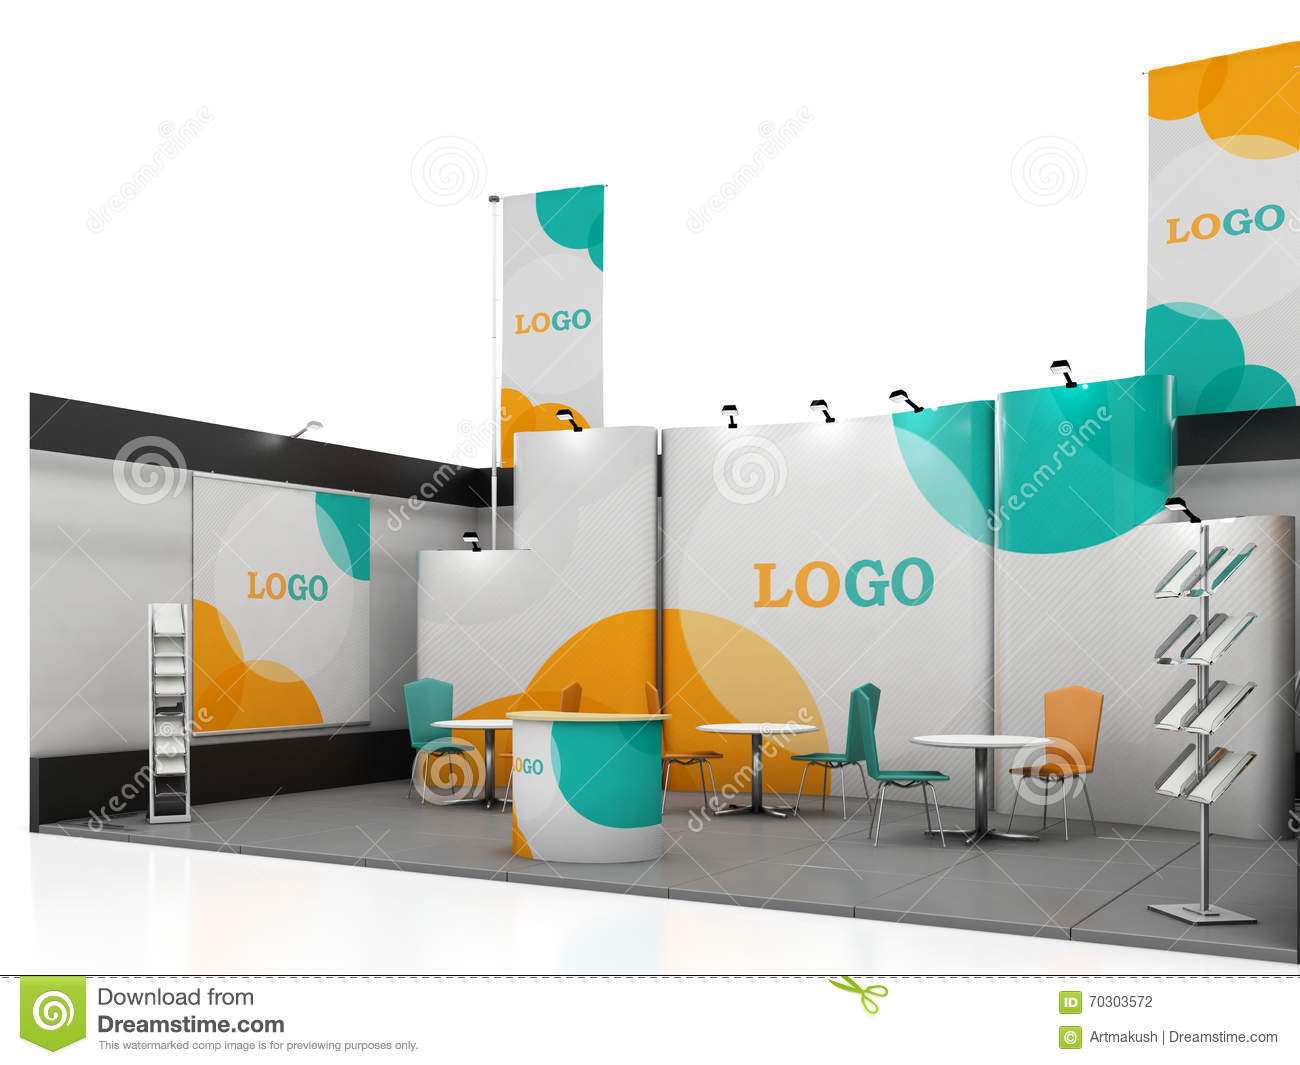 Exhibition Stand Mockup Free Download : Blank creative exhibition stand design with color shapes